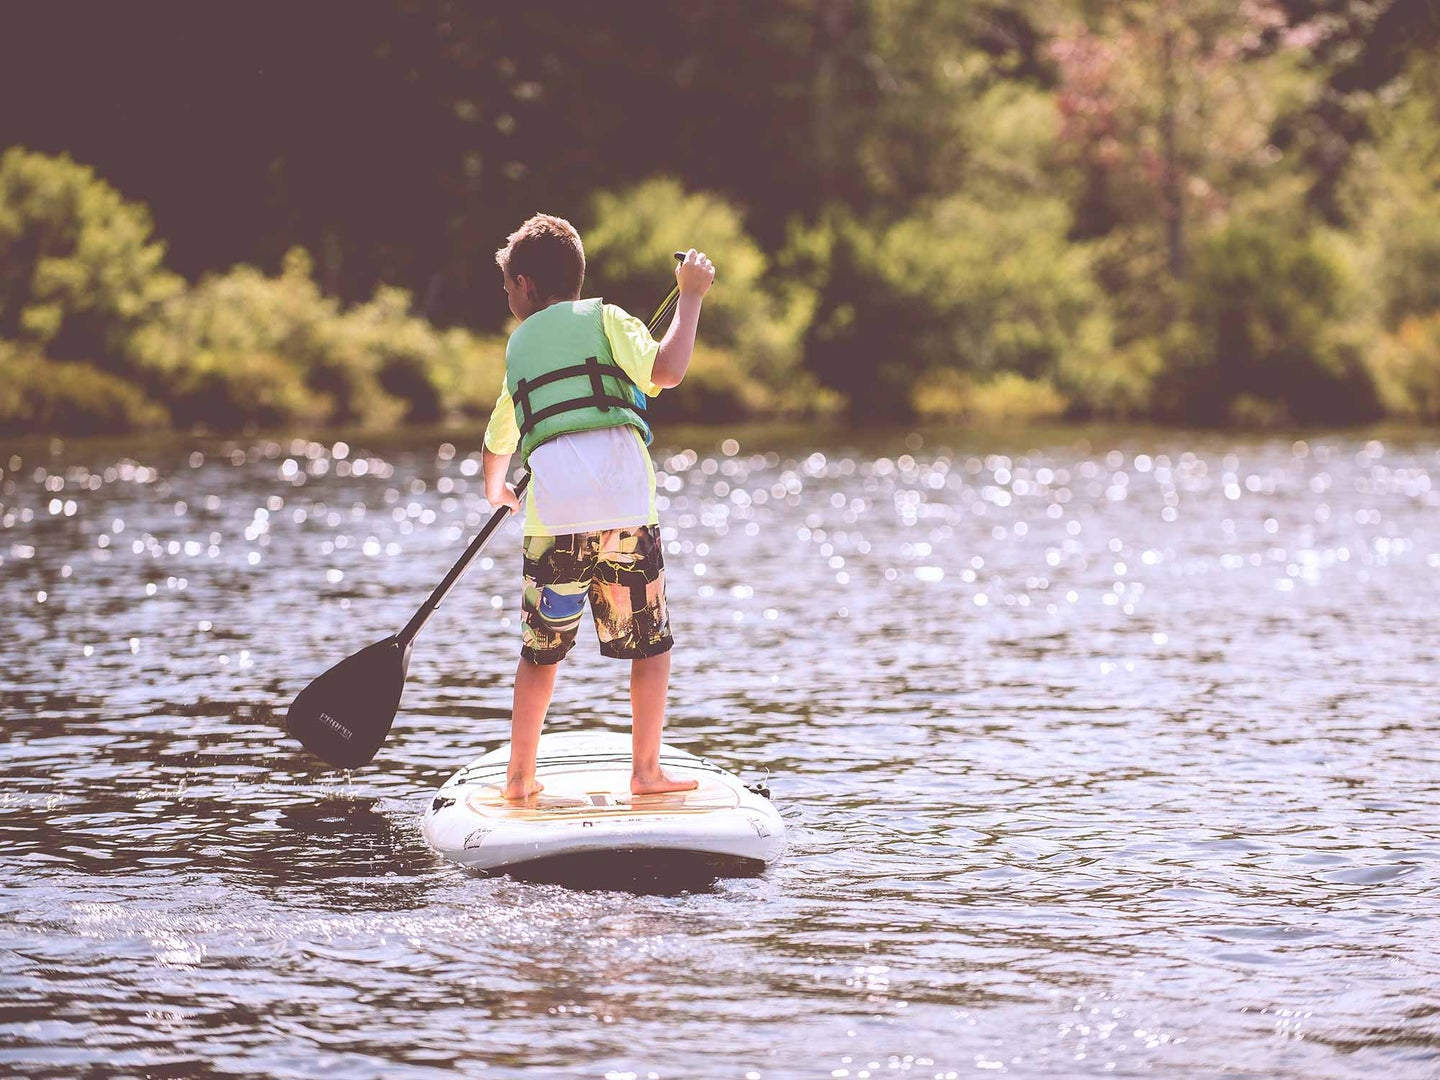 Young boy on a paddleboard